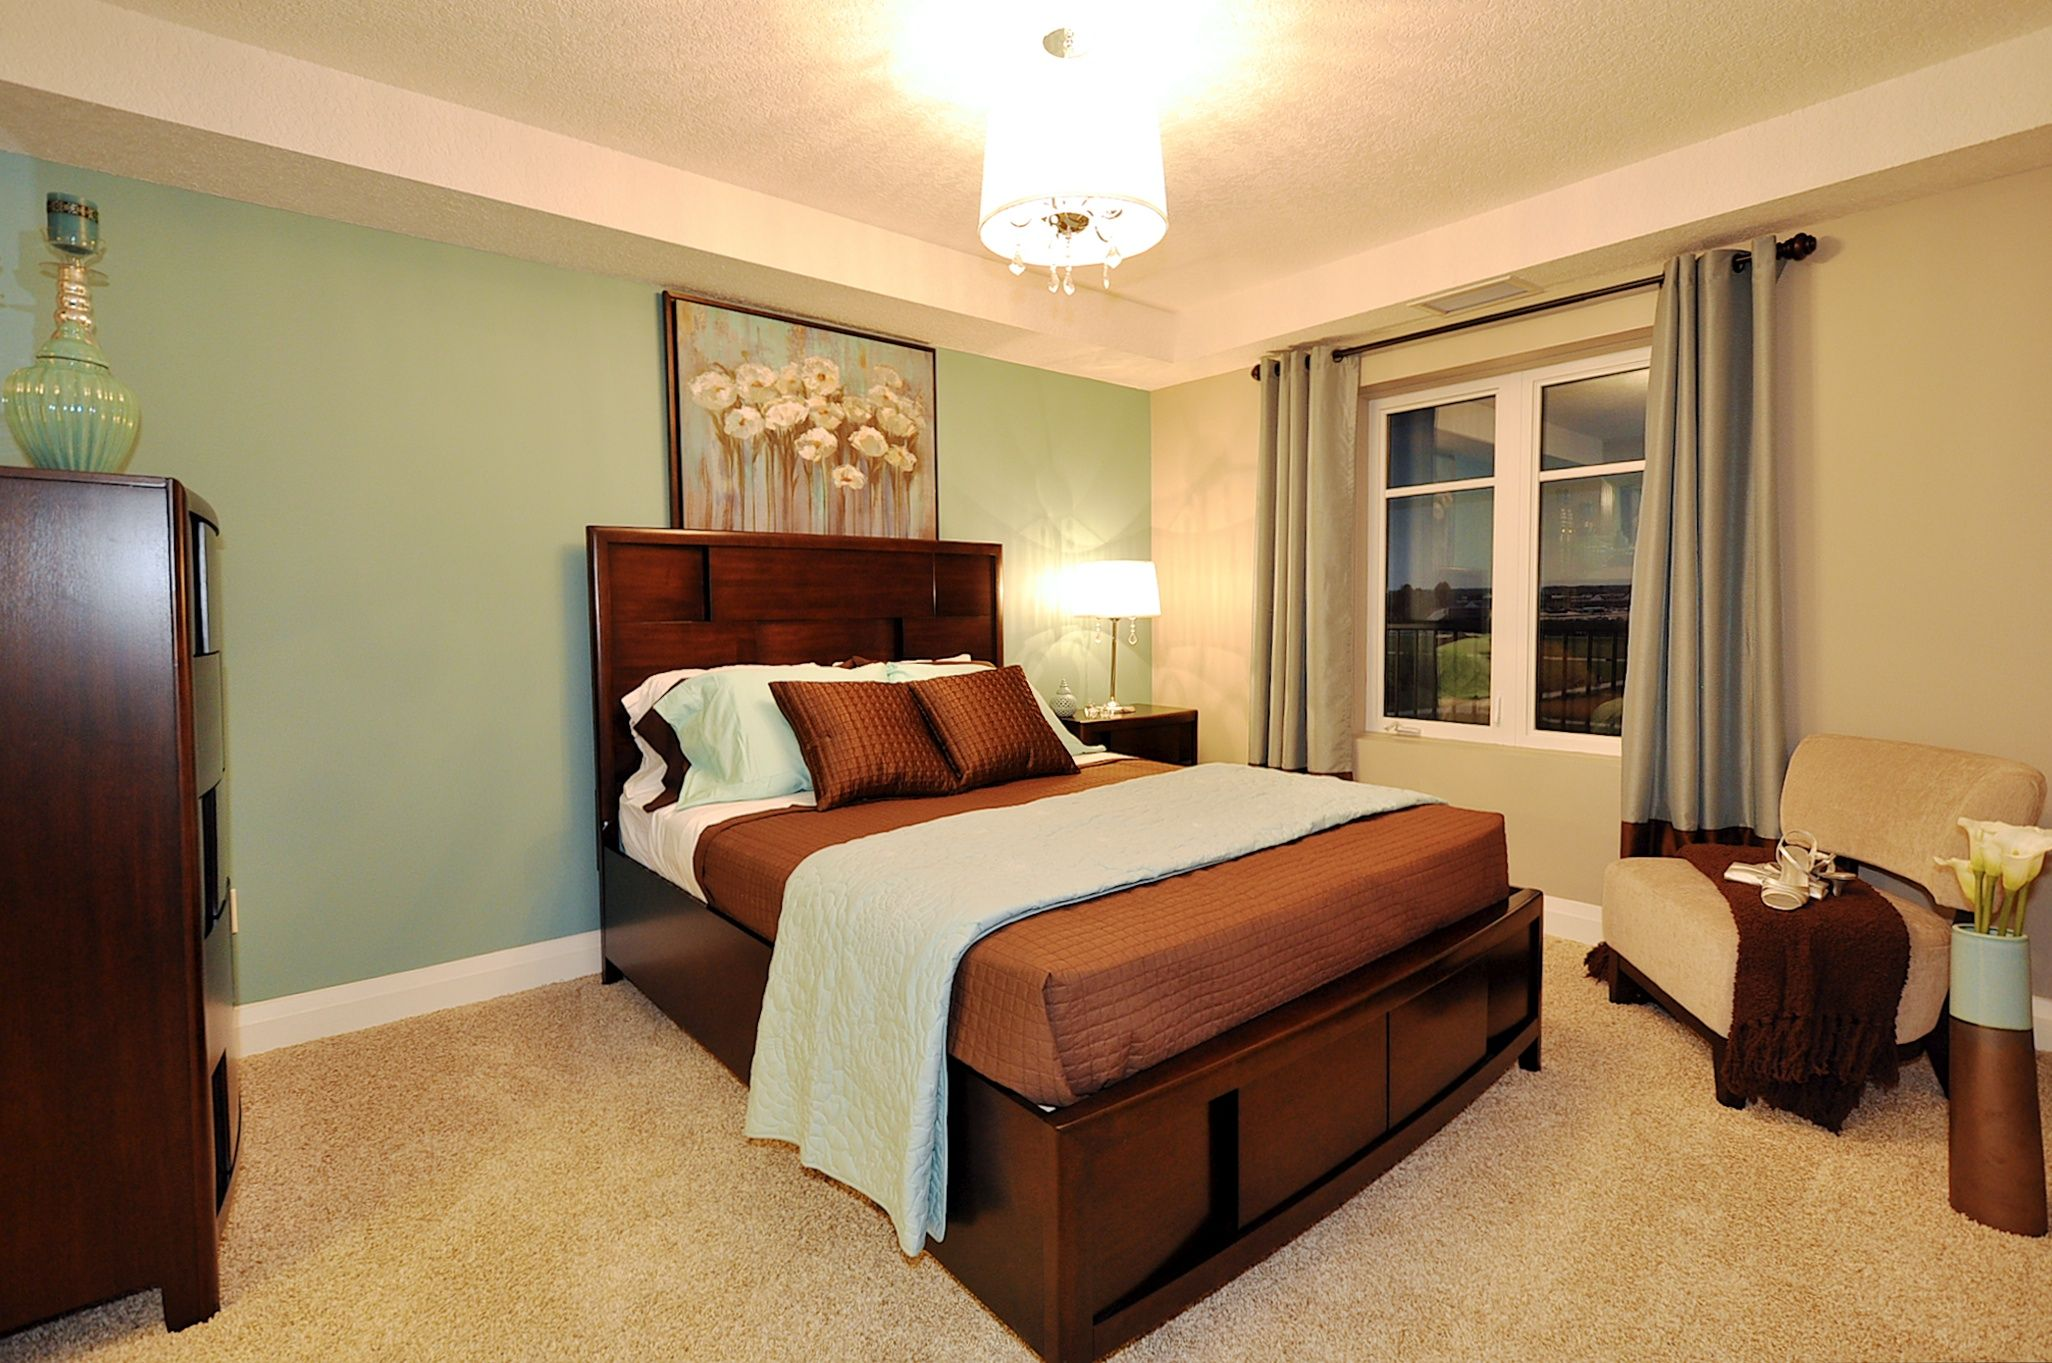 Bedroom Colors For A Couple Bedroom Design Ideas New Best